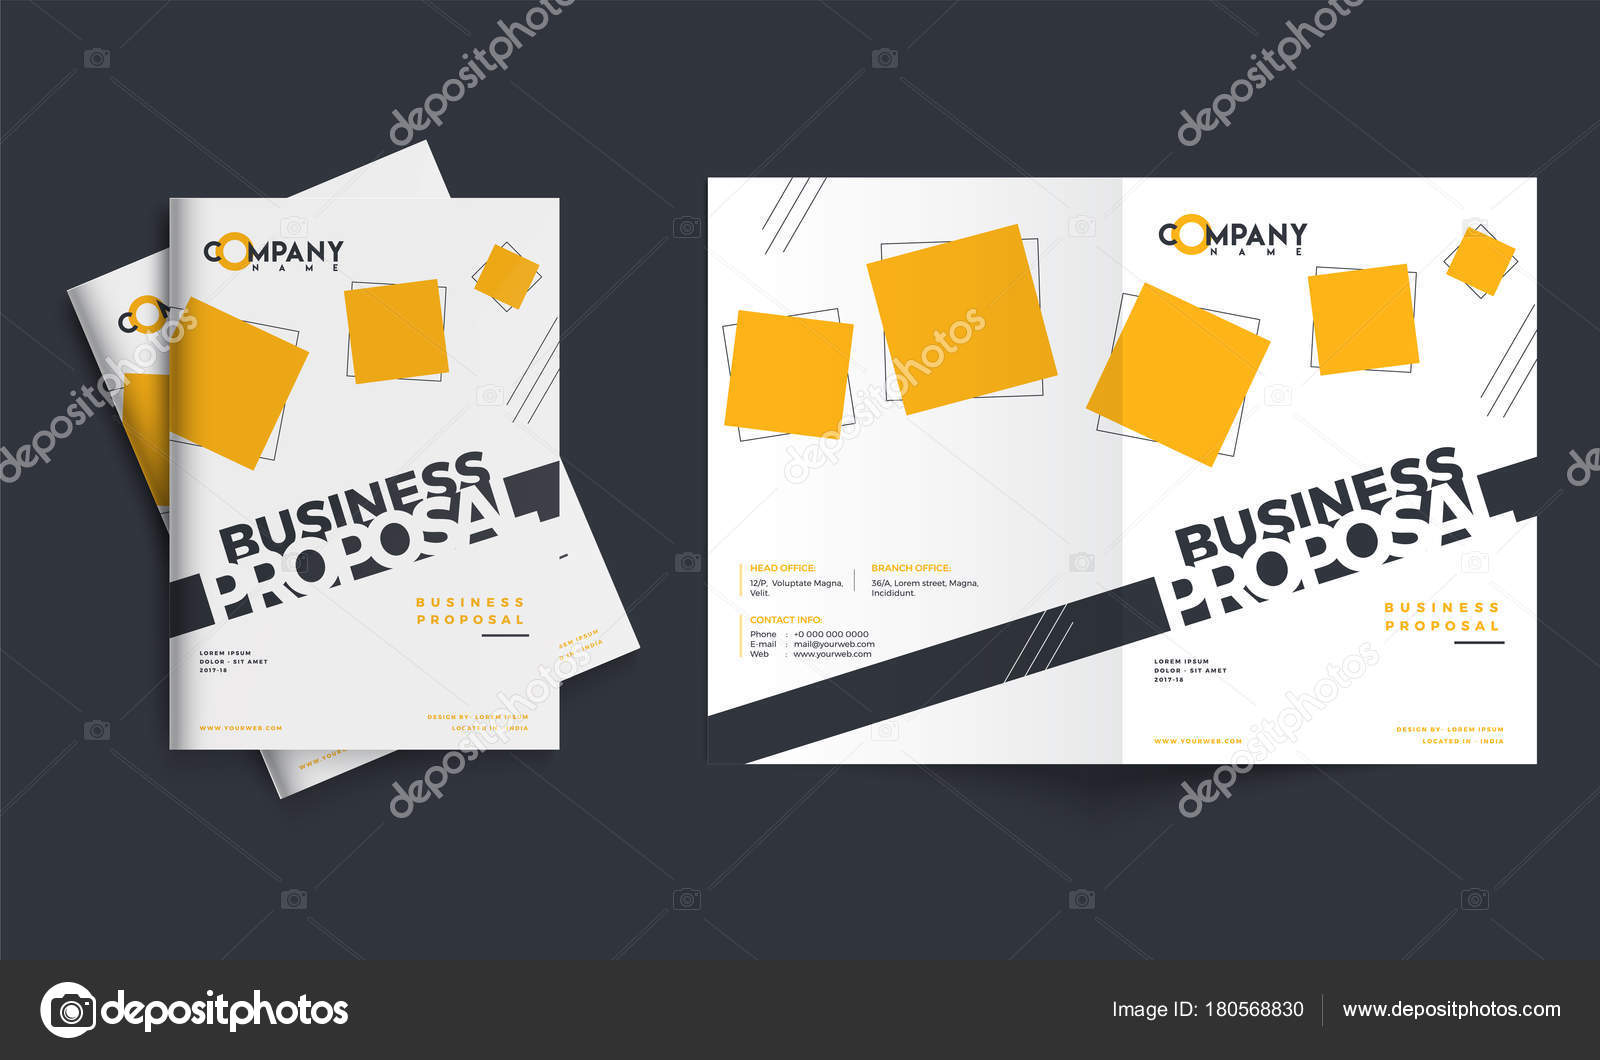 Creative business proposal design corporate template layout wit creative business proposal design corporate template layout wit stock vector wajeb Images